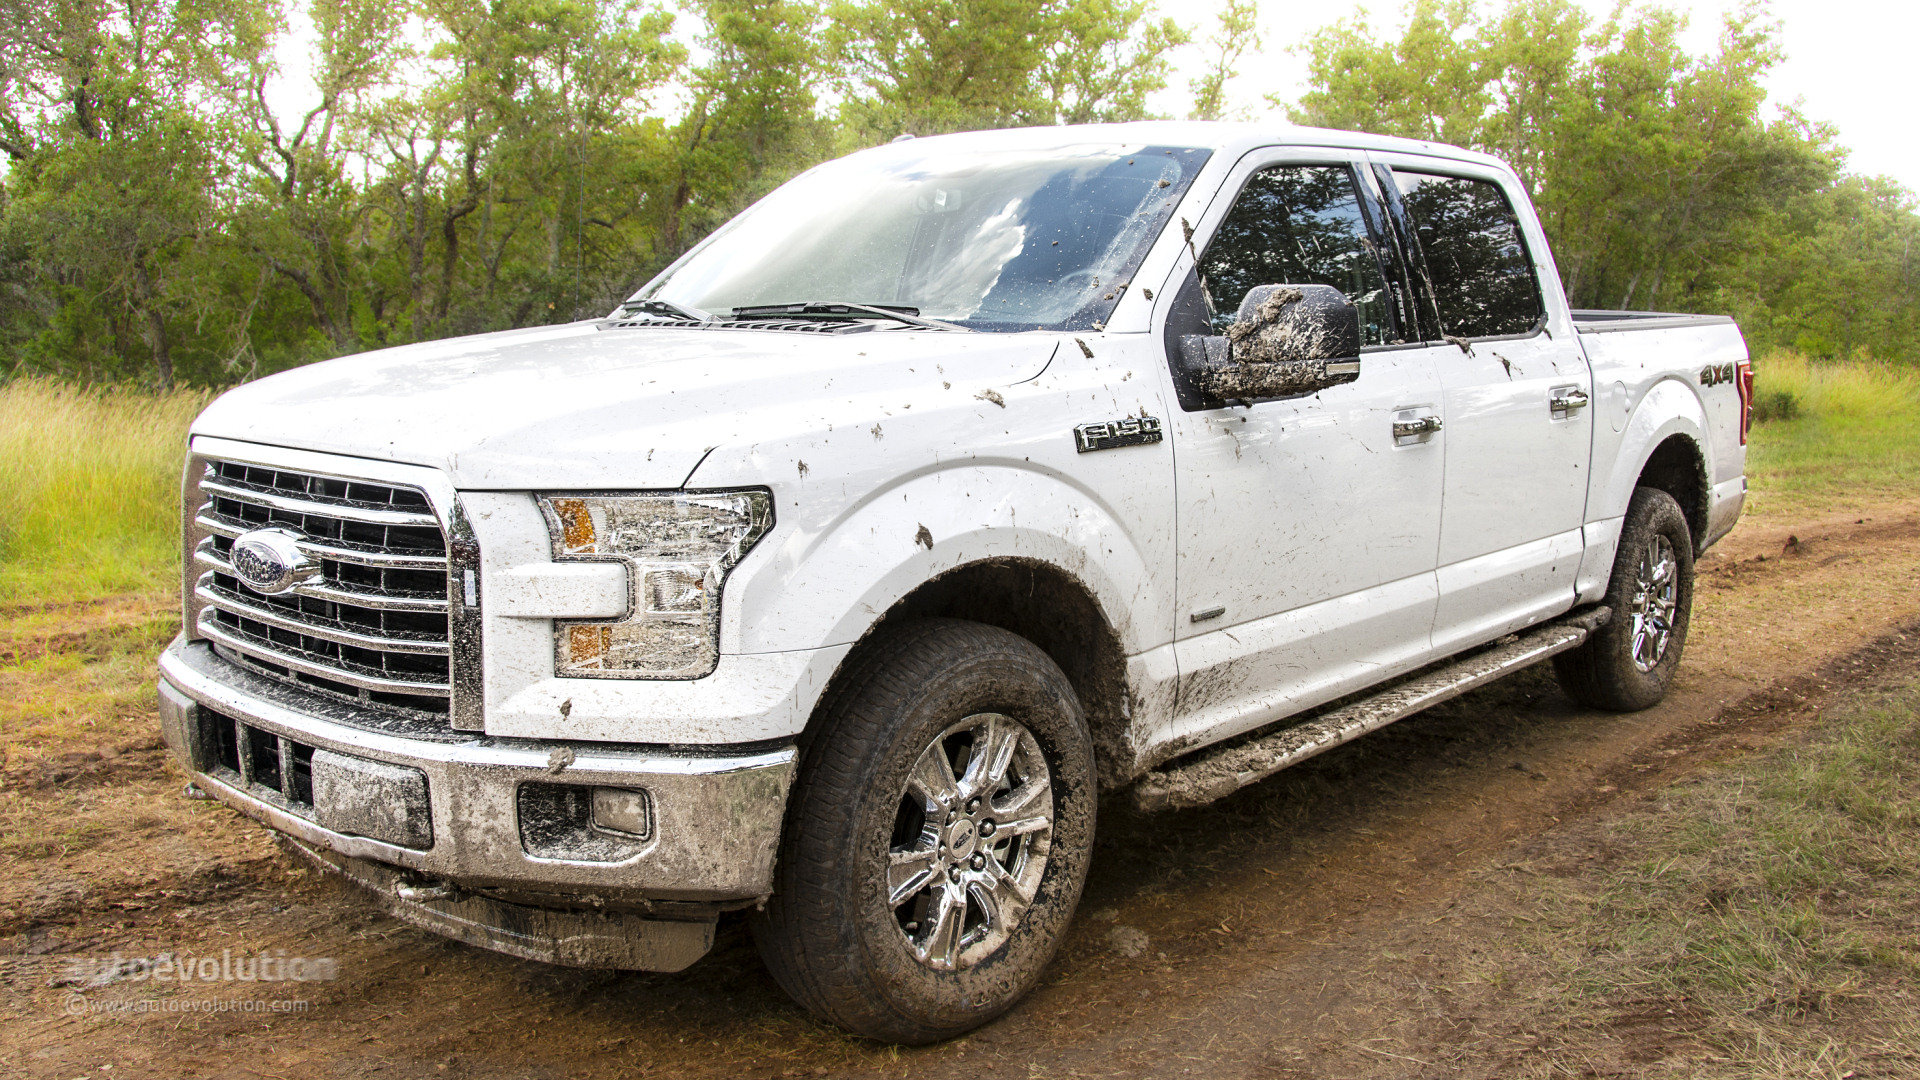 Ford F-150 Hybrid Pickup Truck in the Works - autoevolution